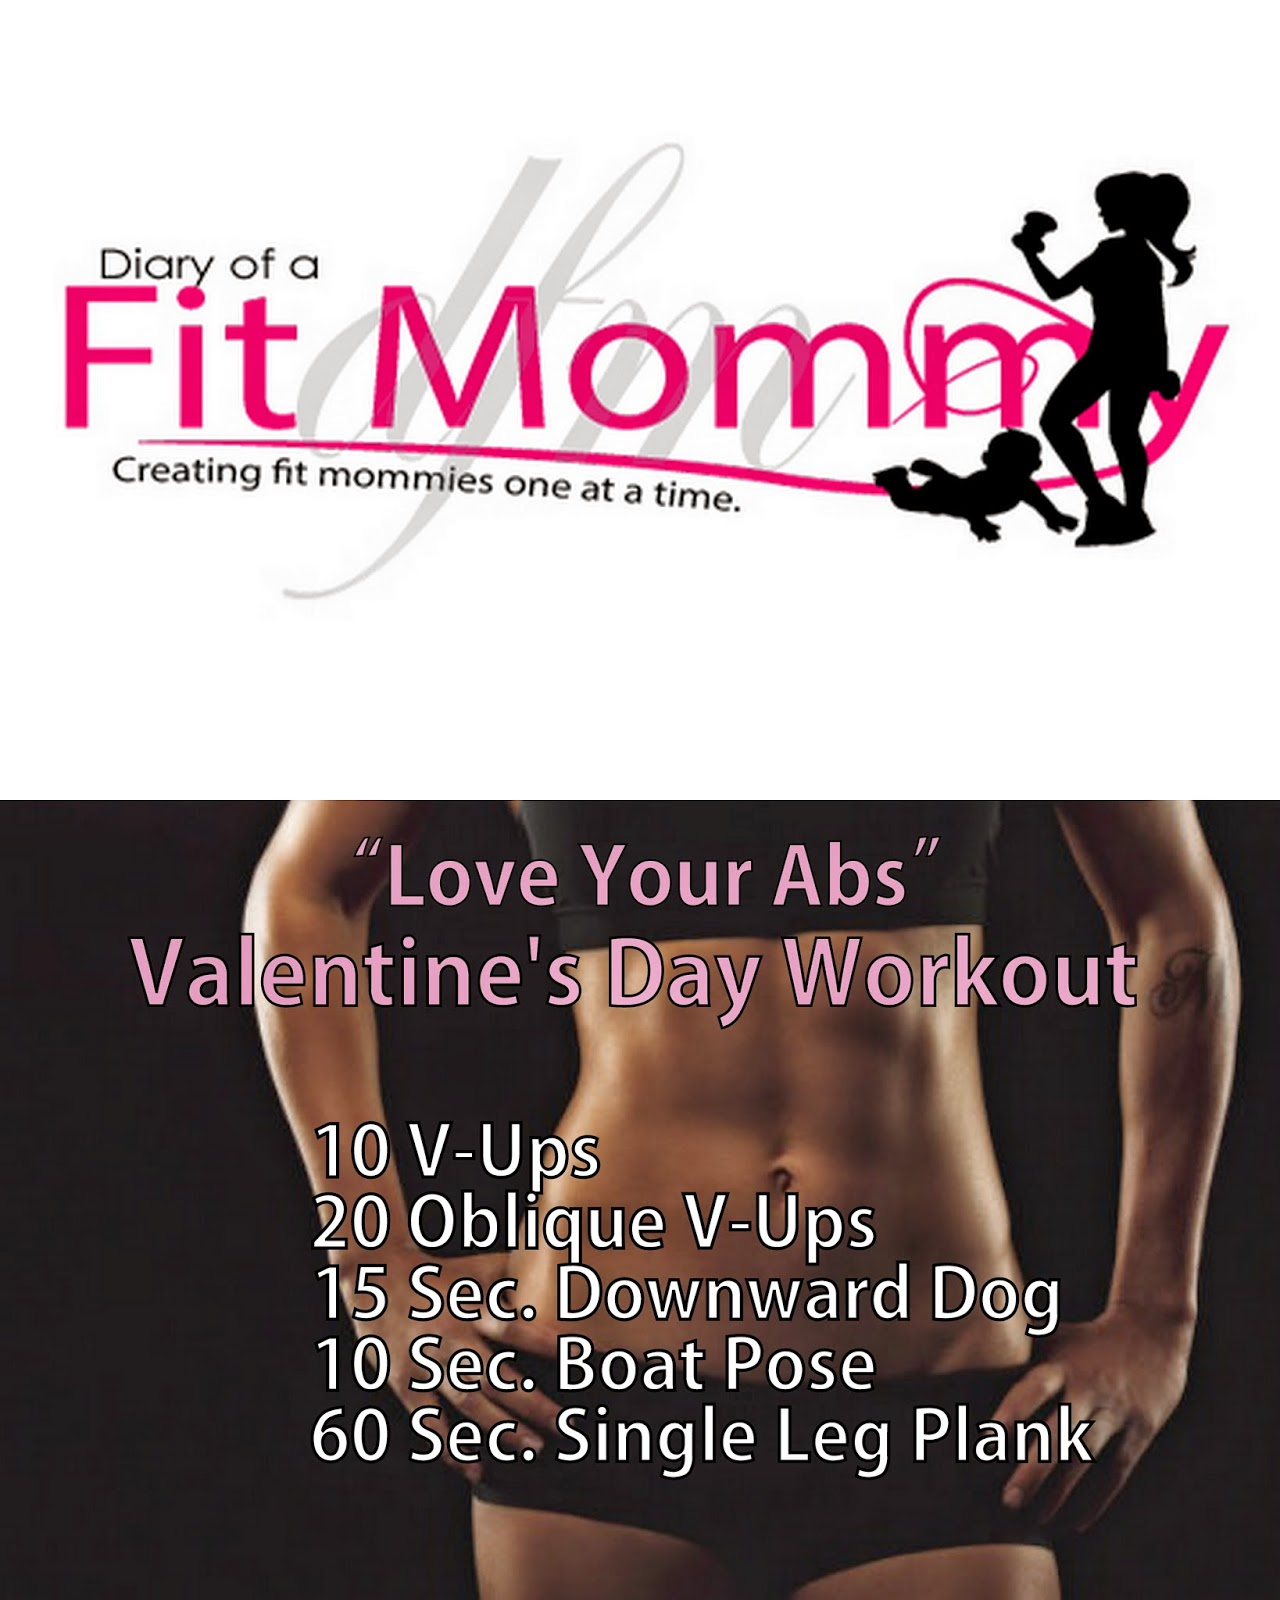 Love Your Abs Valentines Day Workout